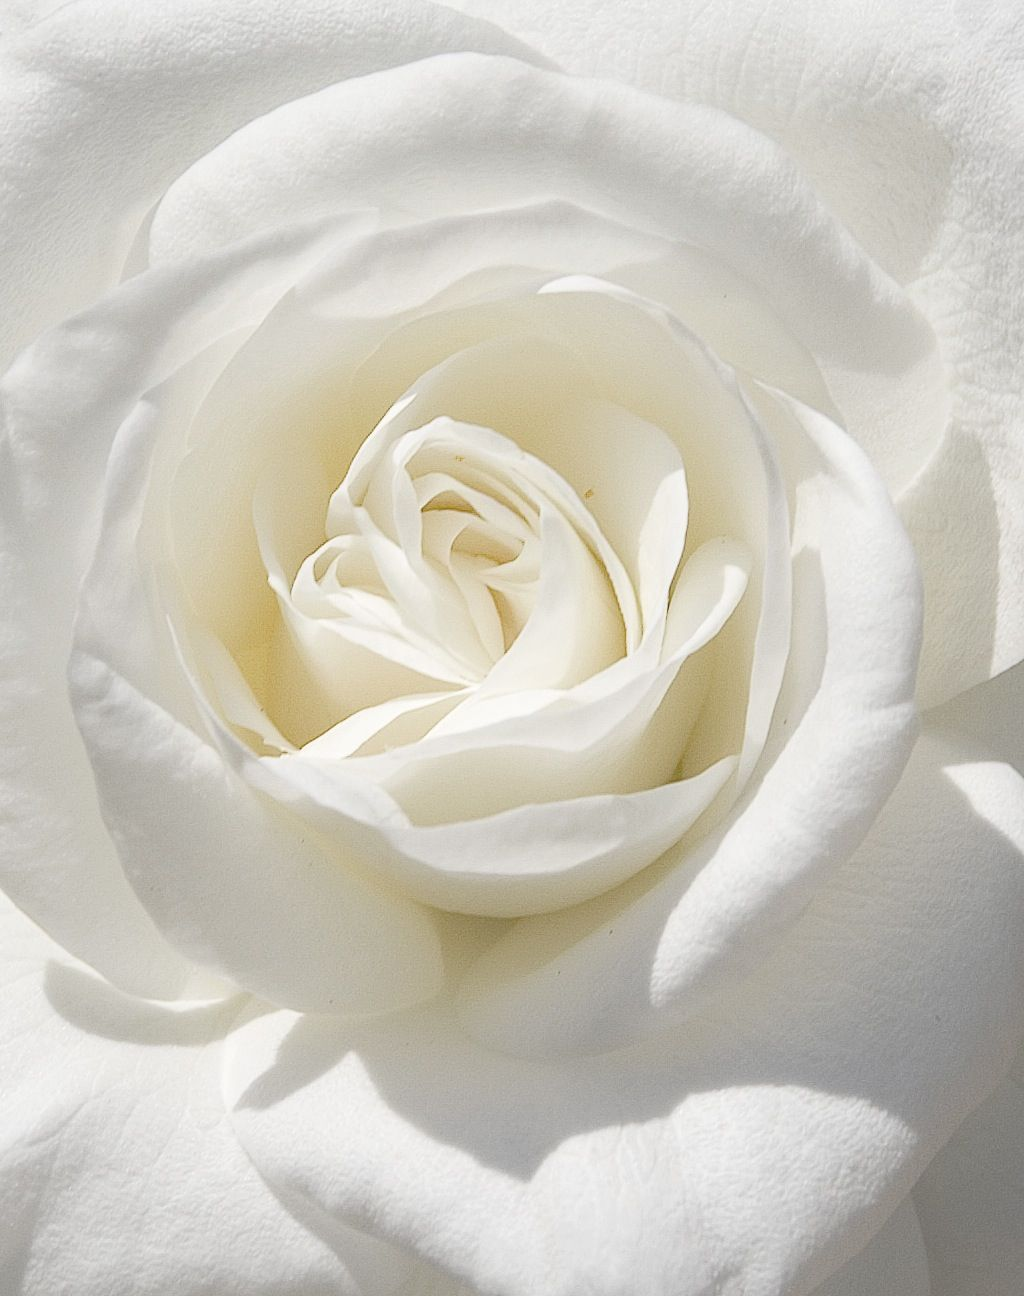 White rose dreamy steamy creamy pinterest rose flowers and white rose biocorpaavc Choice Image